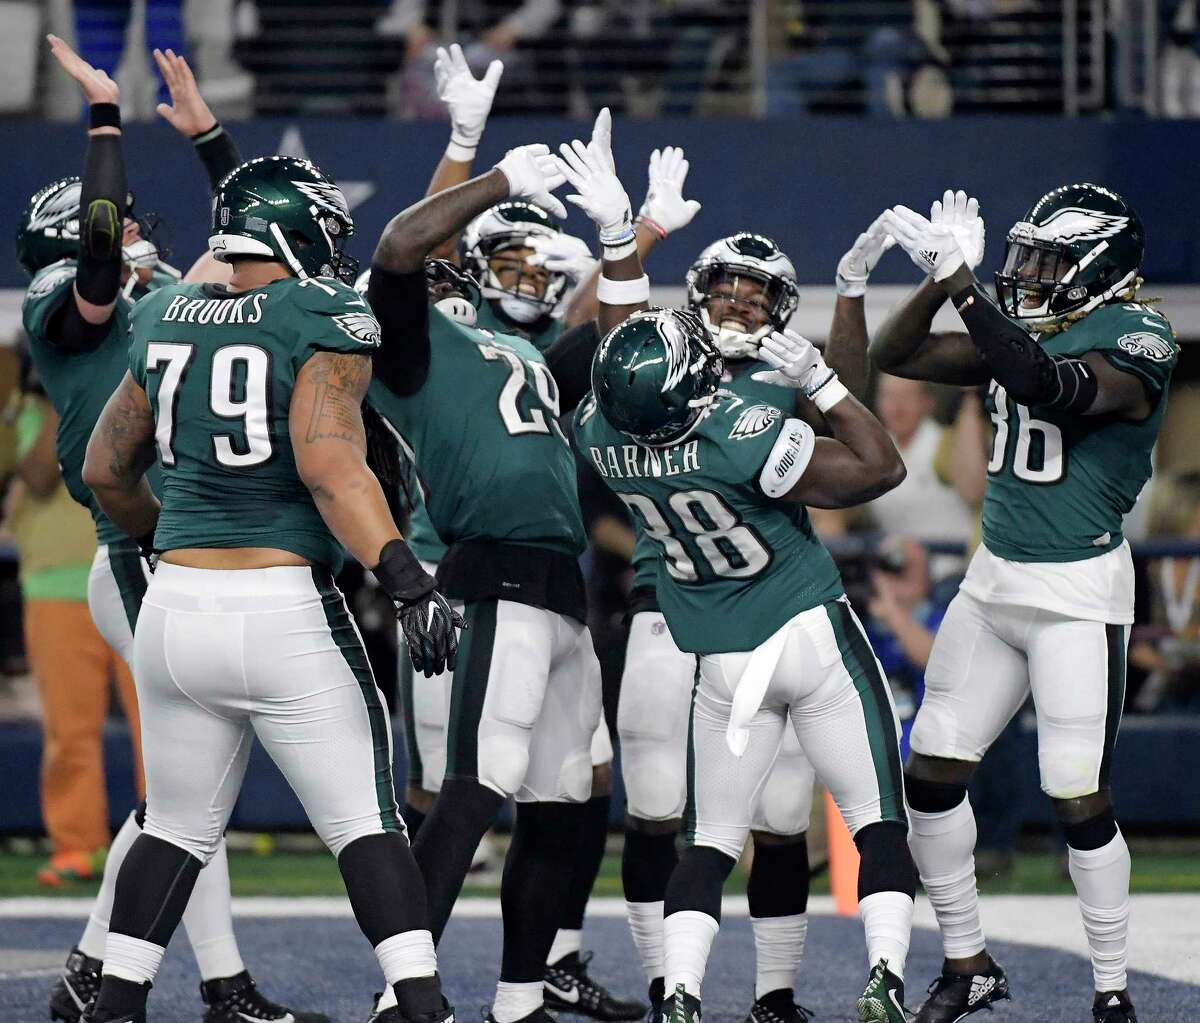 JOHN McCLAIN'S NFL POWER RANKINGS: WEEK 12 1. Philadelphia 9-1 Last week: 1 Of the 50 teams that have started 9-1, 23 continued on to reach the Super Bowl. Eleven went on to win the Super Bowl.